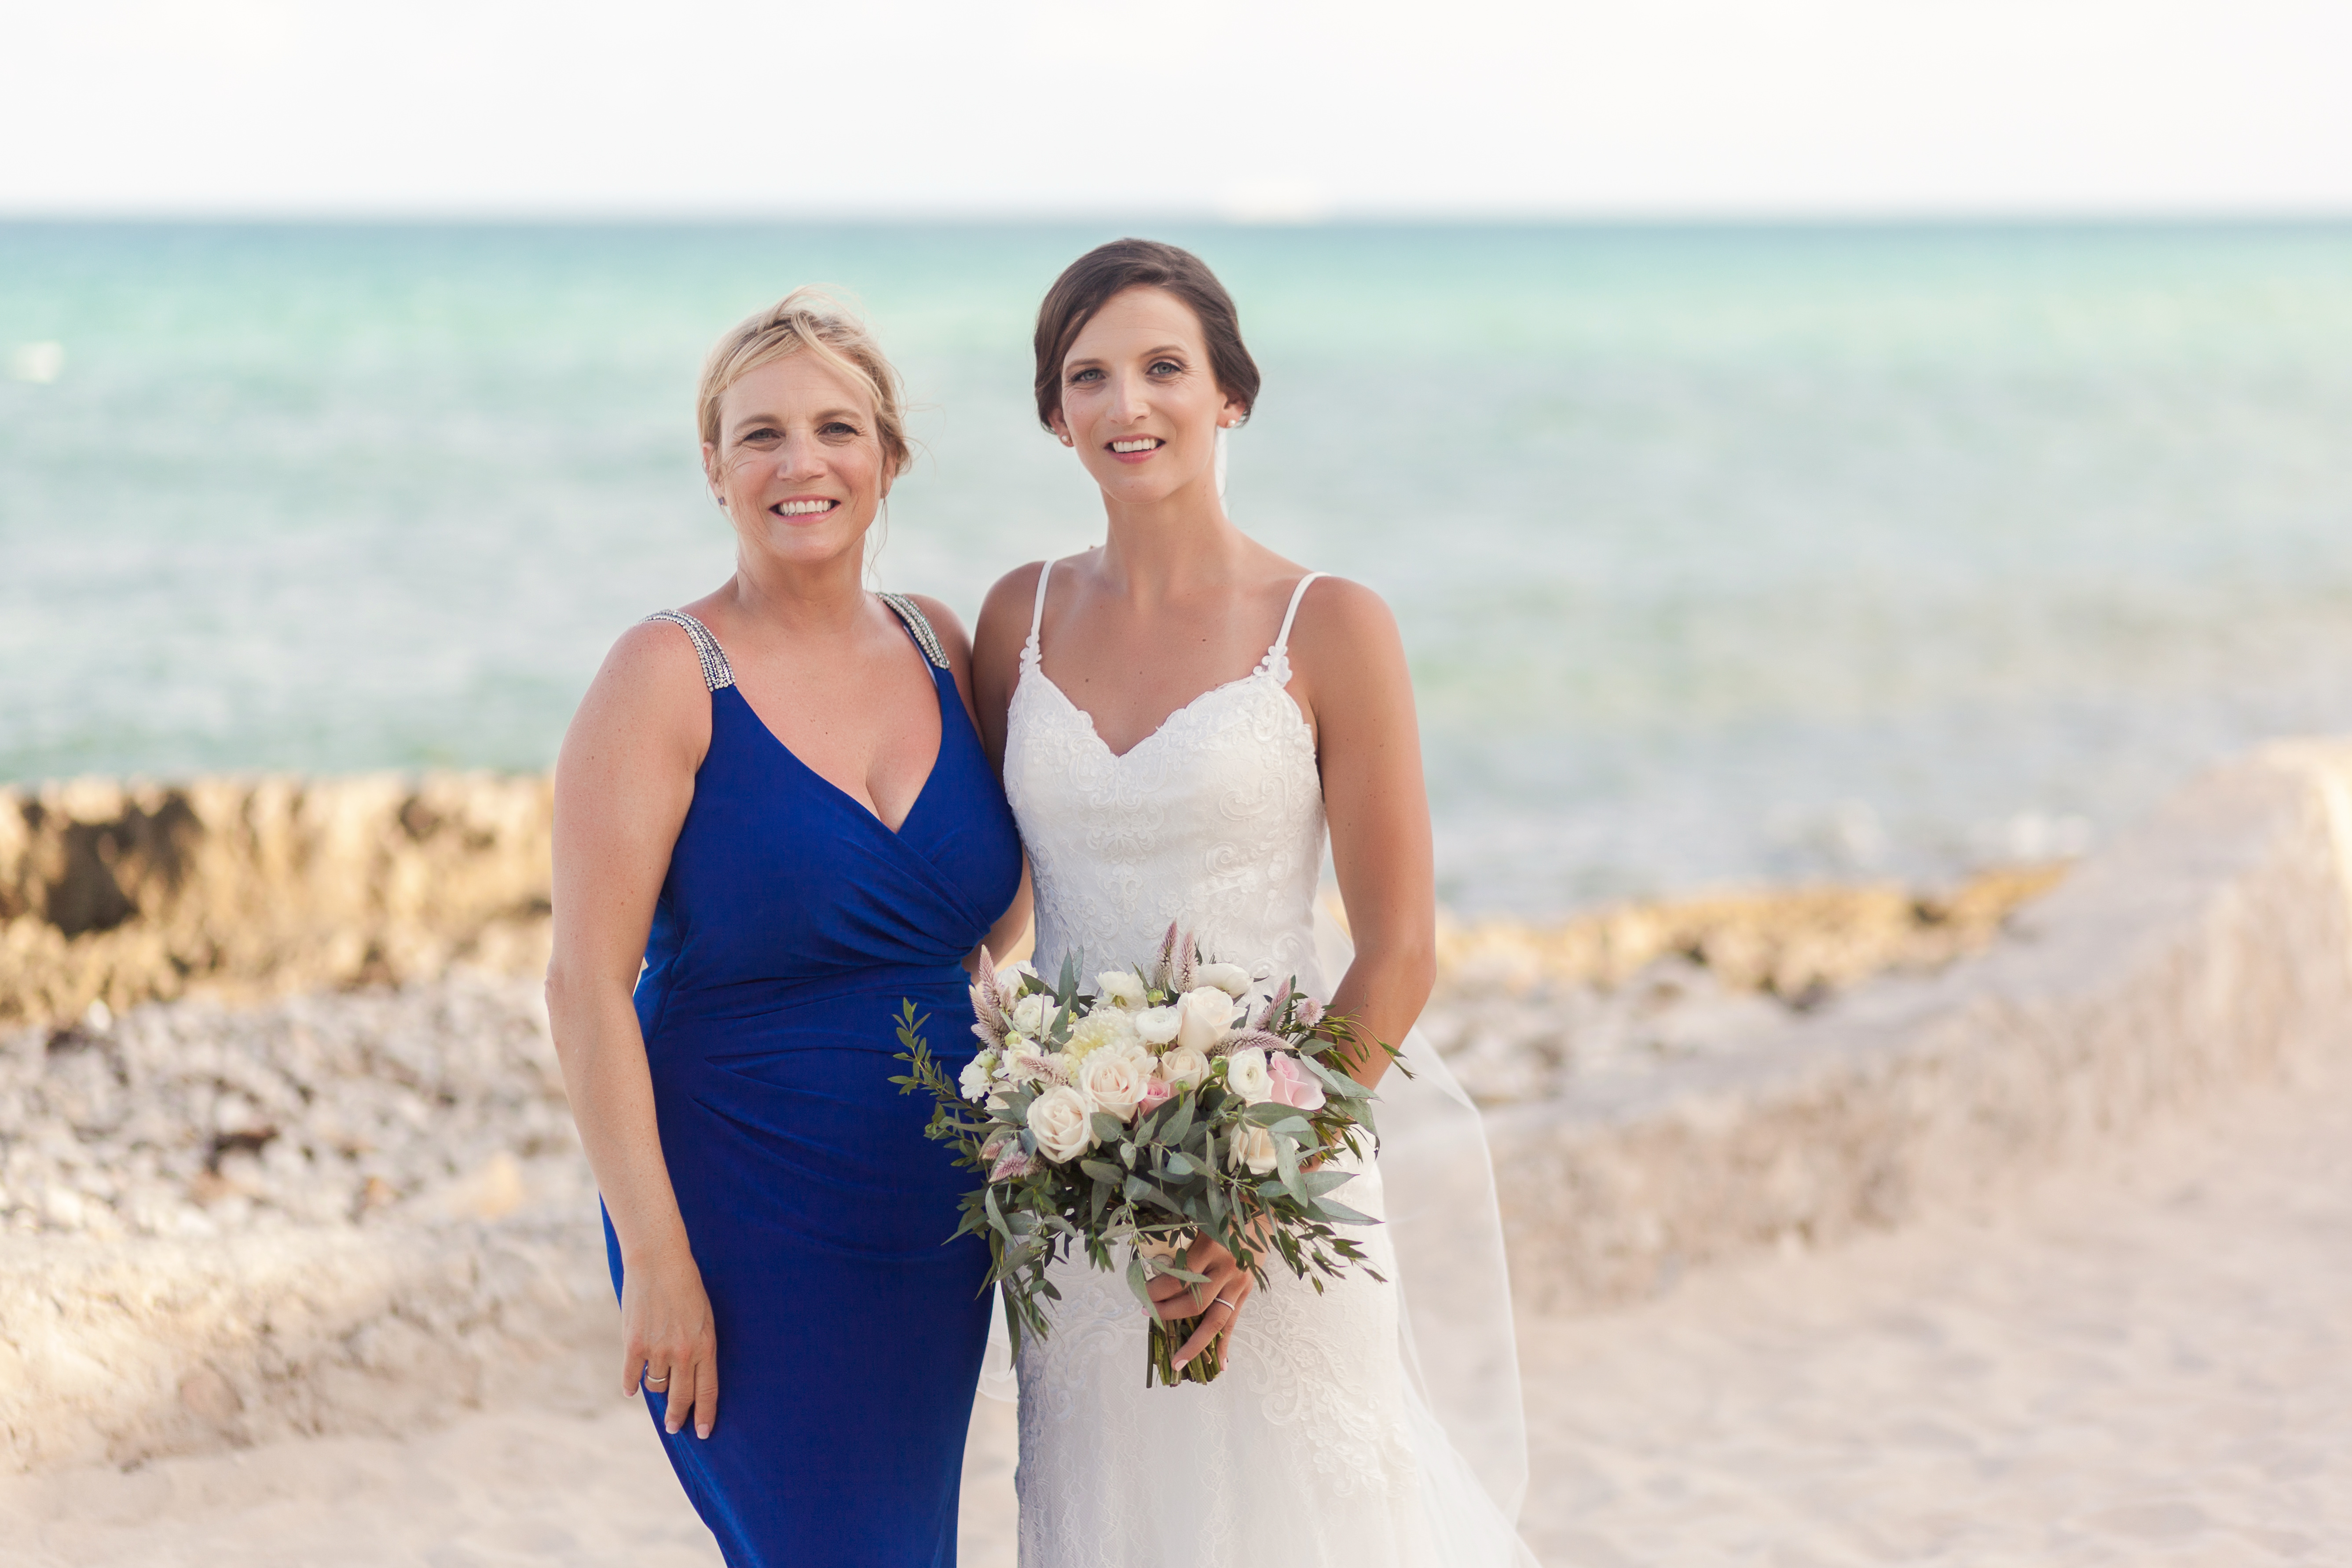 Mother of the Bride: What to Wear to a Beach Wedding